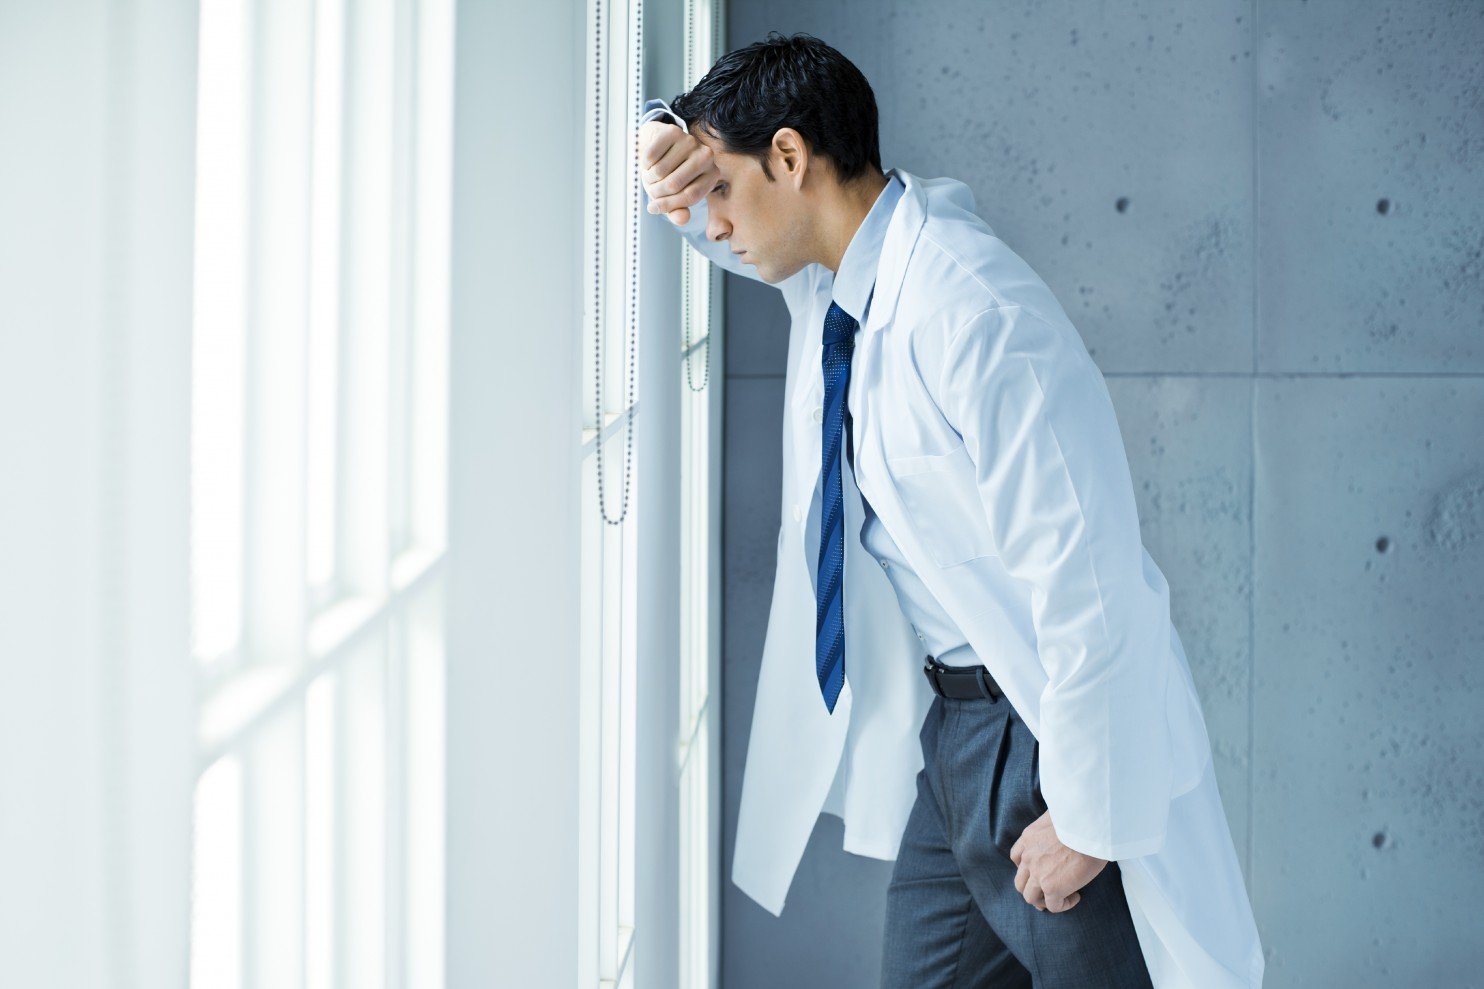 Study Shows that More than a quarter of medical students are depressed, suicidal